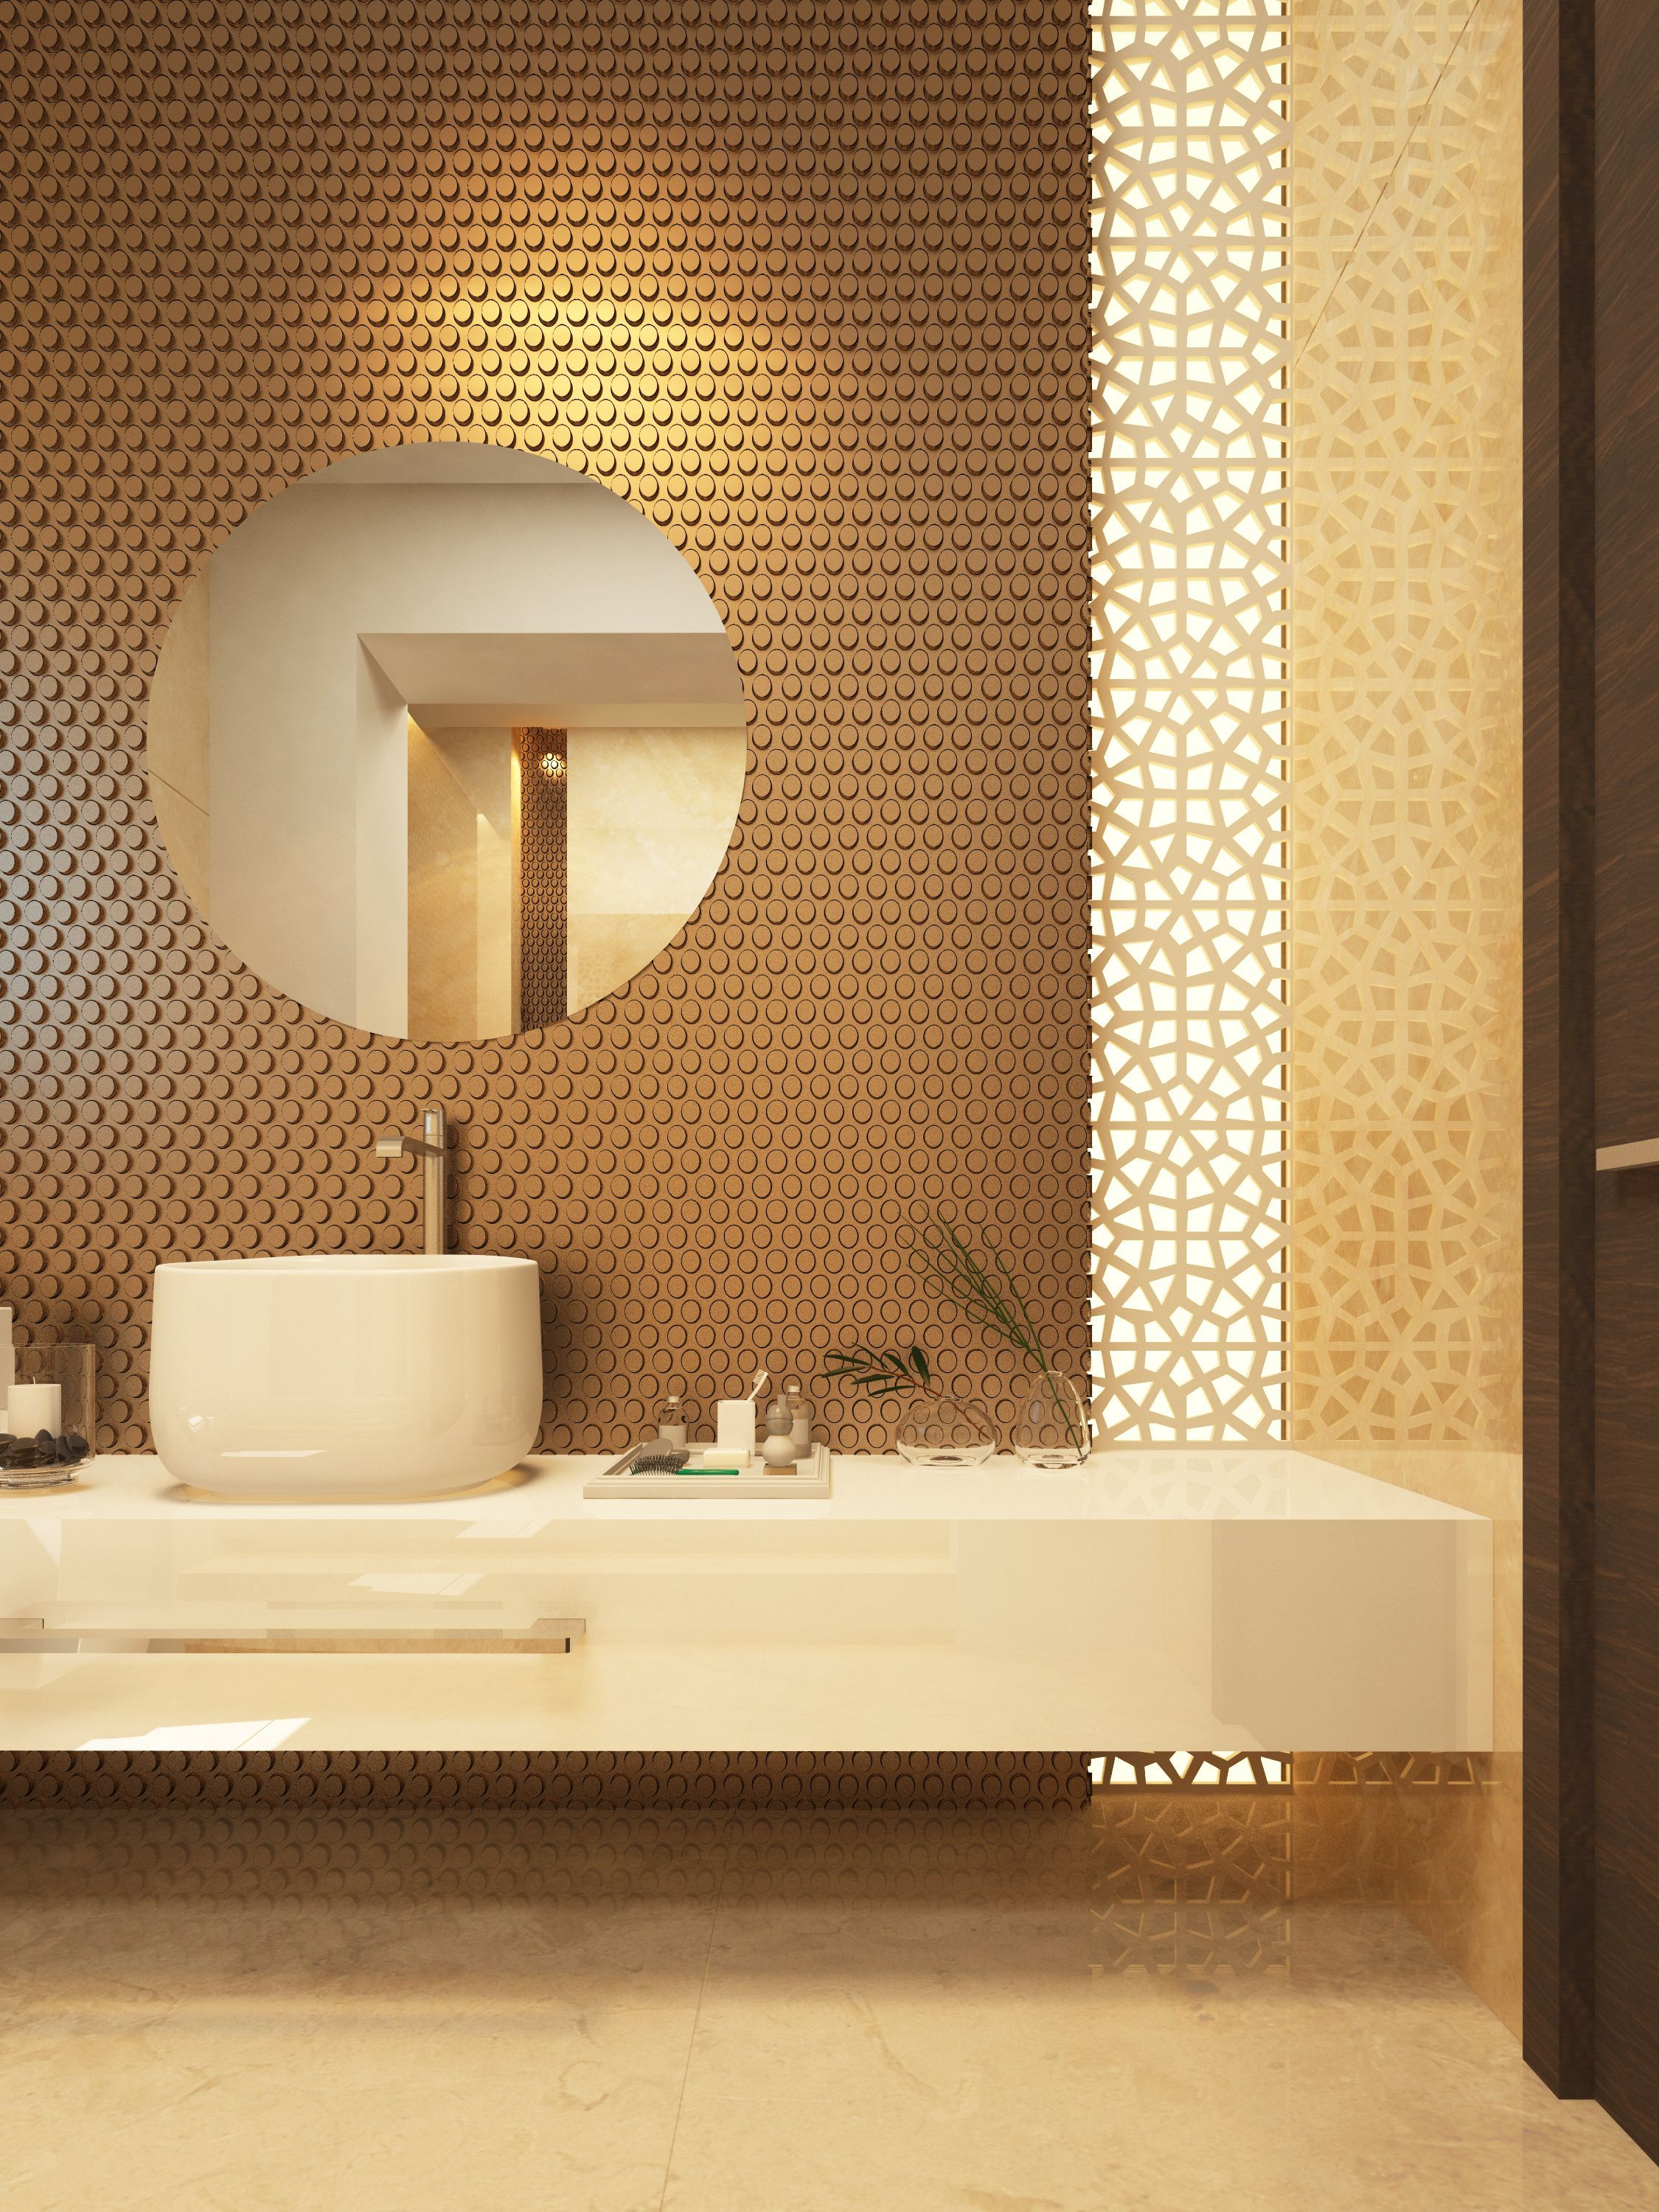 22 Bathroom Tile Ideas   Simple U0026 Stylish